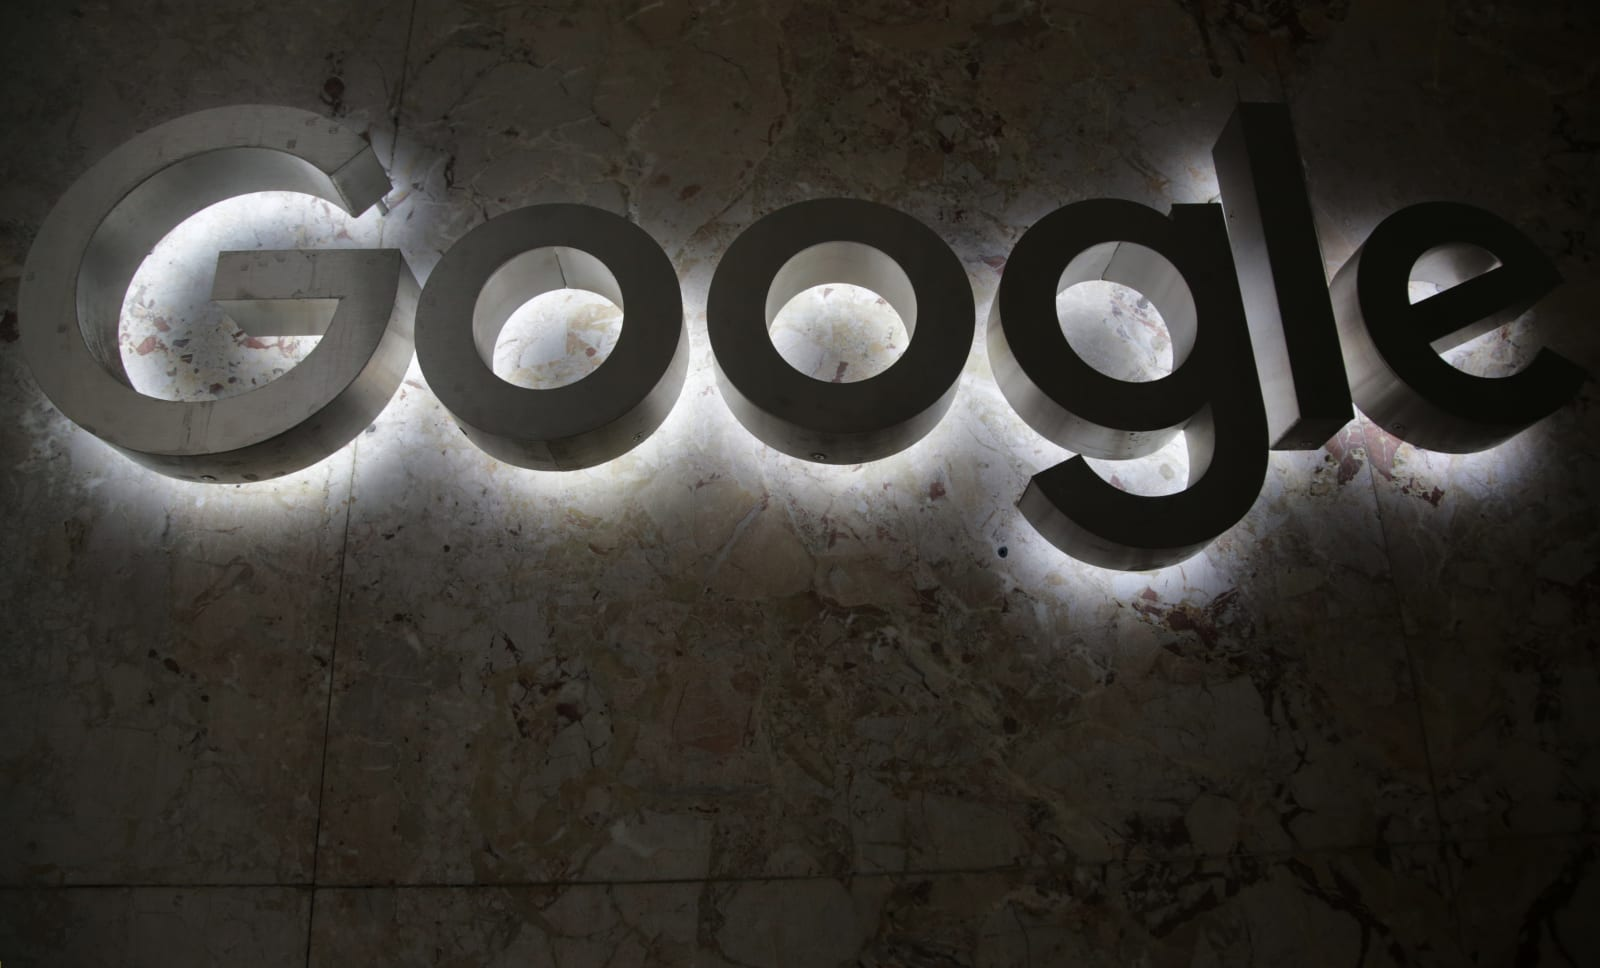 Google discusses privacy regulation ahead of Senate hearing